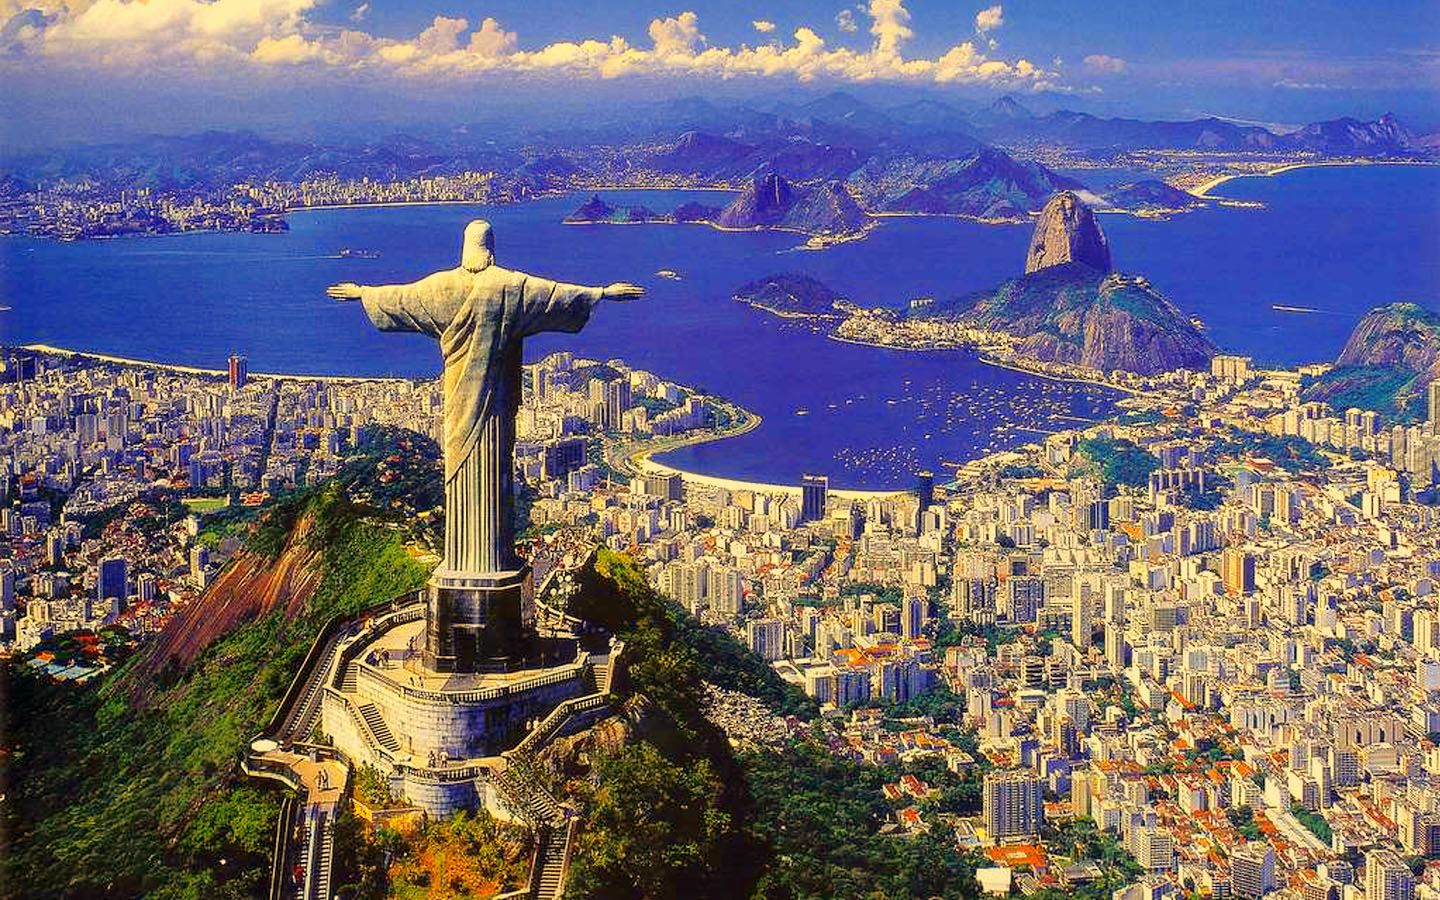 Brazil Wallpapers: A Place For Your Exotic Holiday